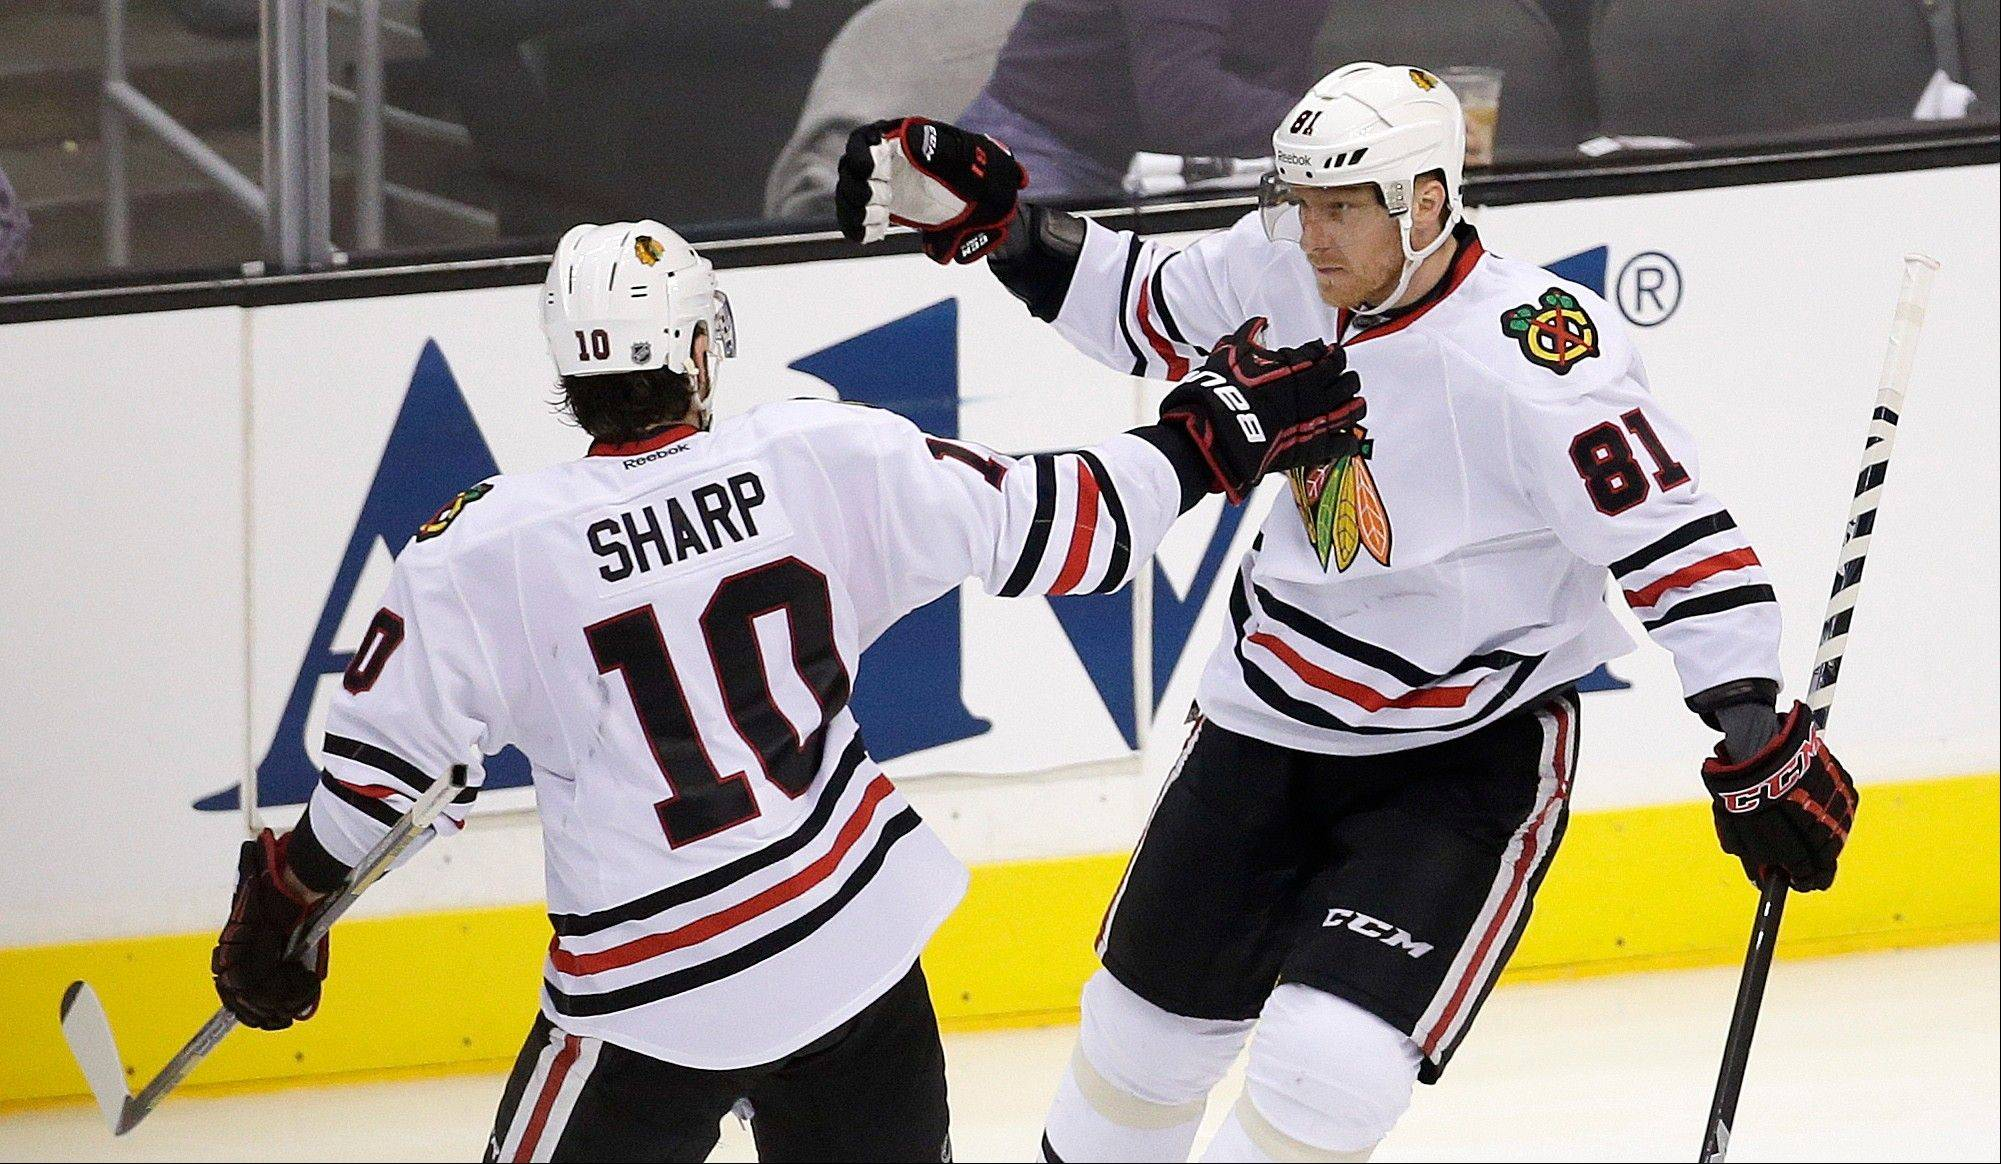 Chicago Blackhawks right wing Marian Hossa, right, celebrates his goal with Patrick Sharp during the third period against the Los Angeles Kings in Game 4 of the NHL hockey Stanley Cup playoffs Western Conference finals, in Los Angeles on Thursday, June 6, 2013.